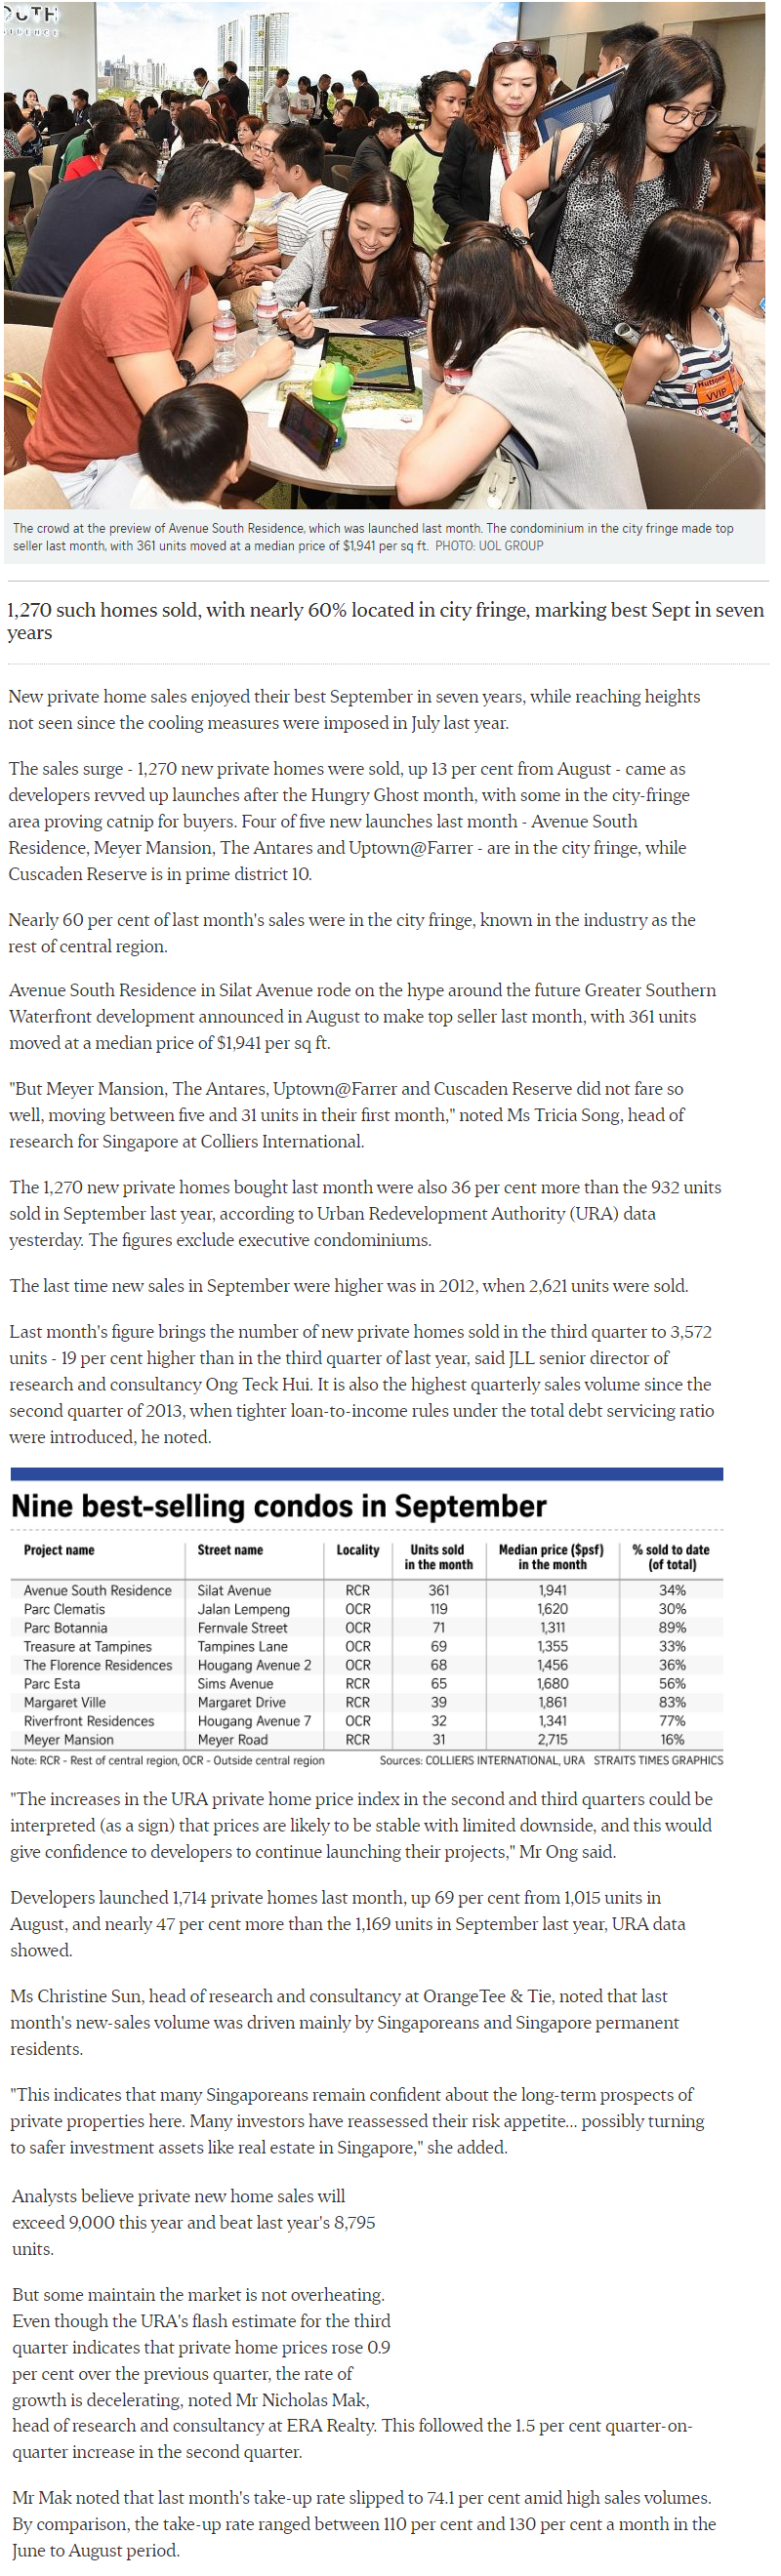 Penrose - New private Home Sales Hit A Hight In September